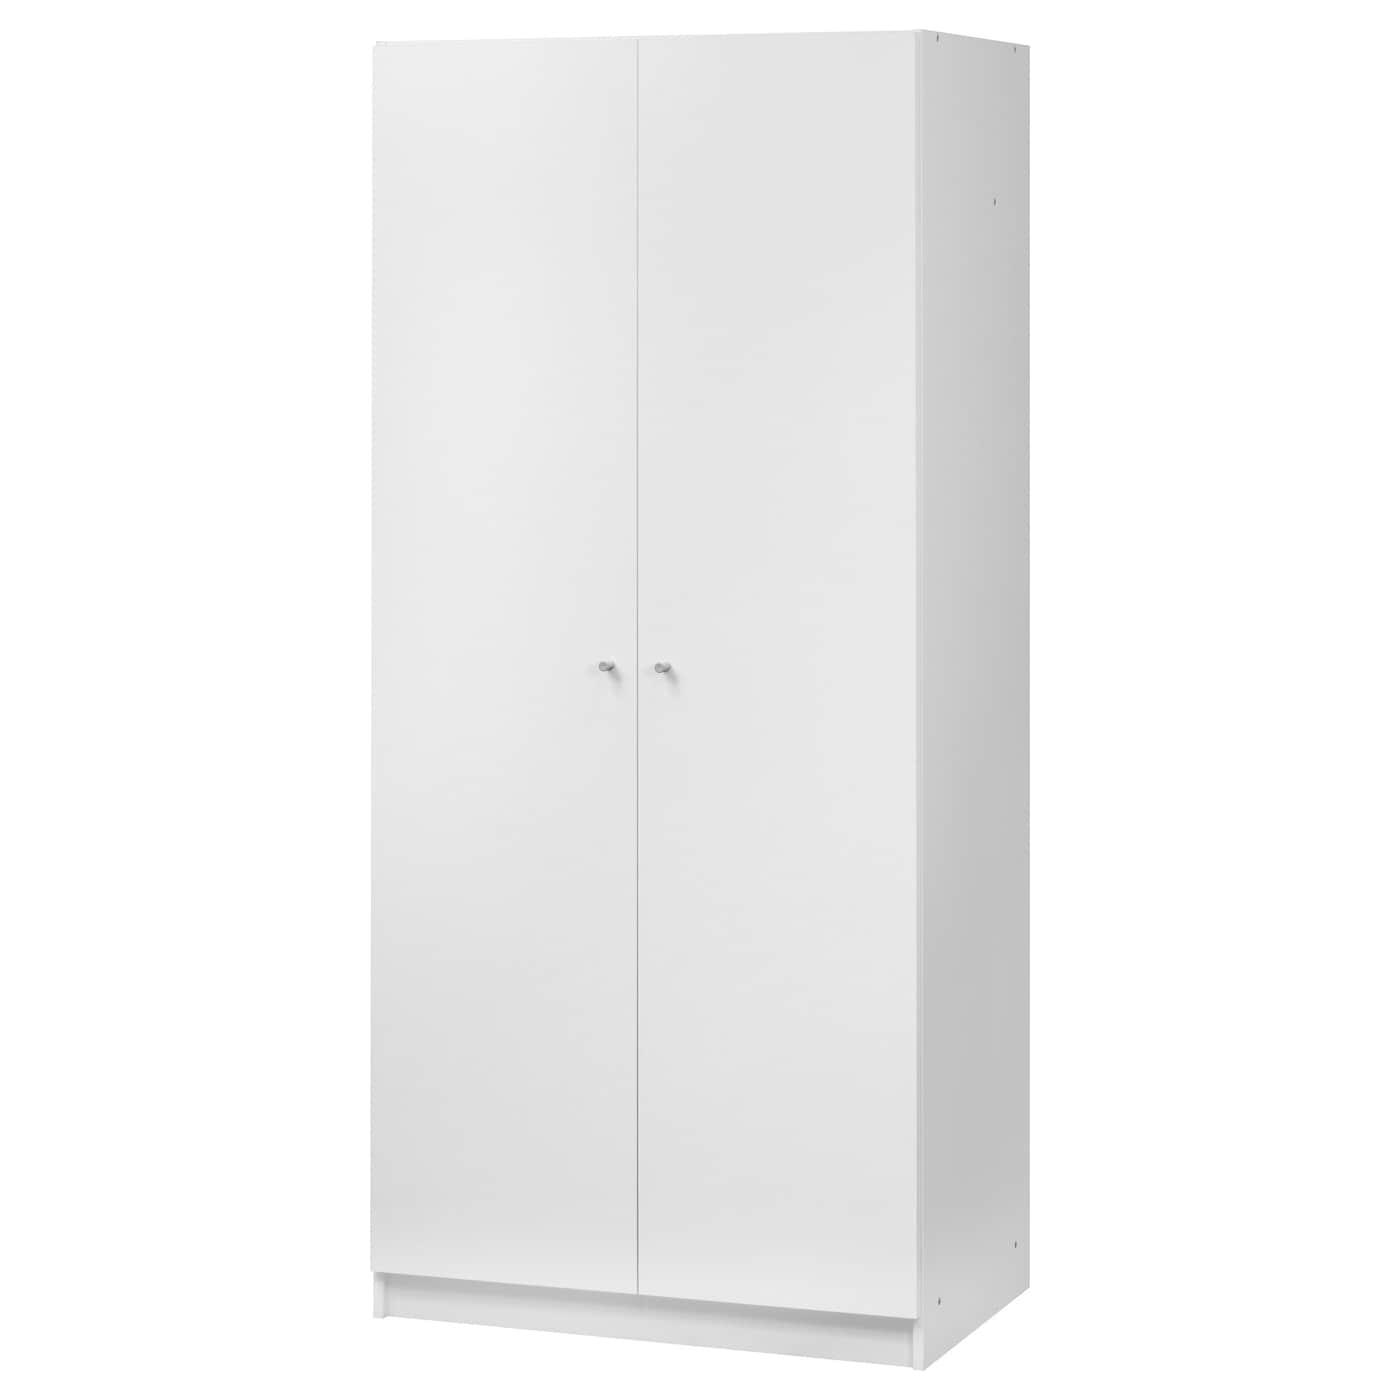 free because ikea space wardrobes white you door gb standing glass a wardrobe don t trysil products mirror save en with